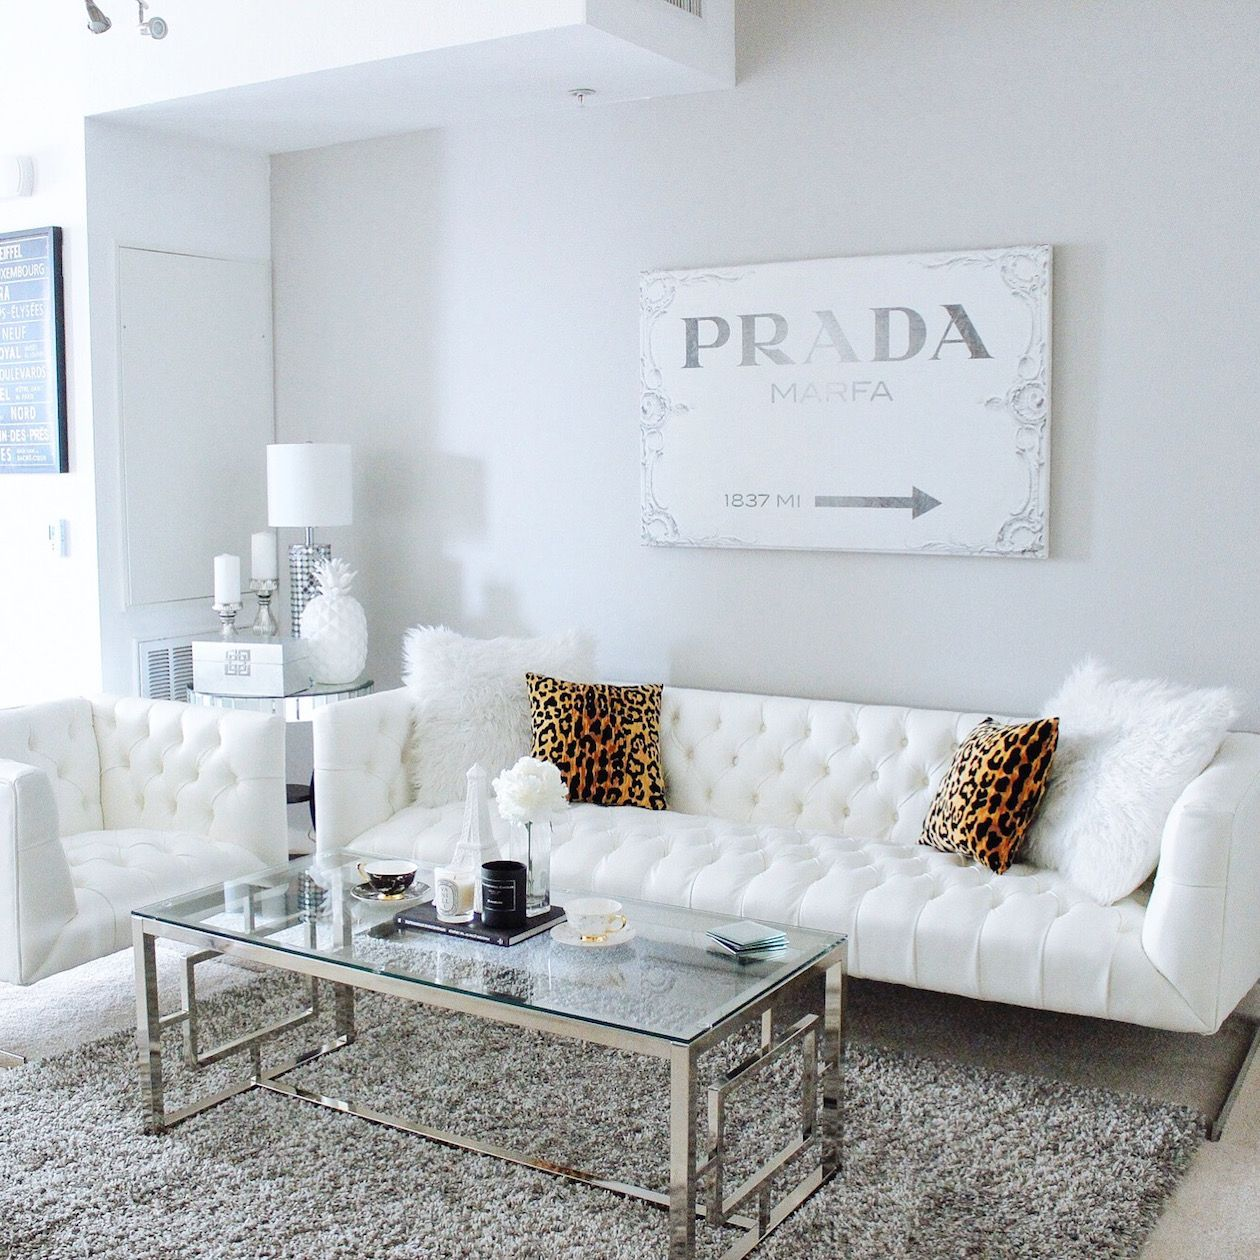 Instagram Diaries 004 Blondie In The City White Living Room Decor White Furniture Living Room Living Room White